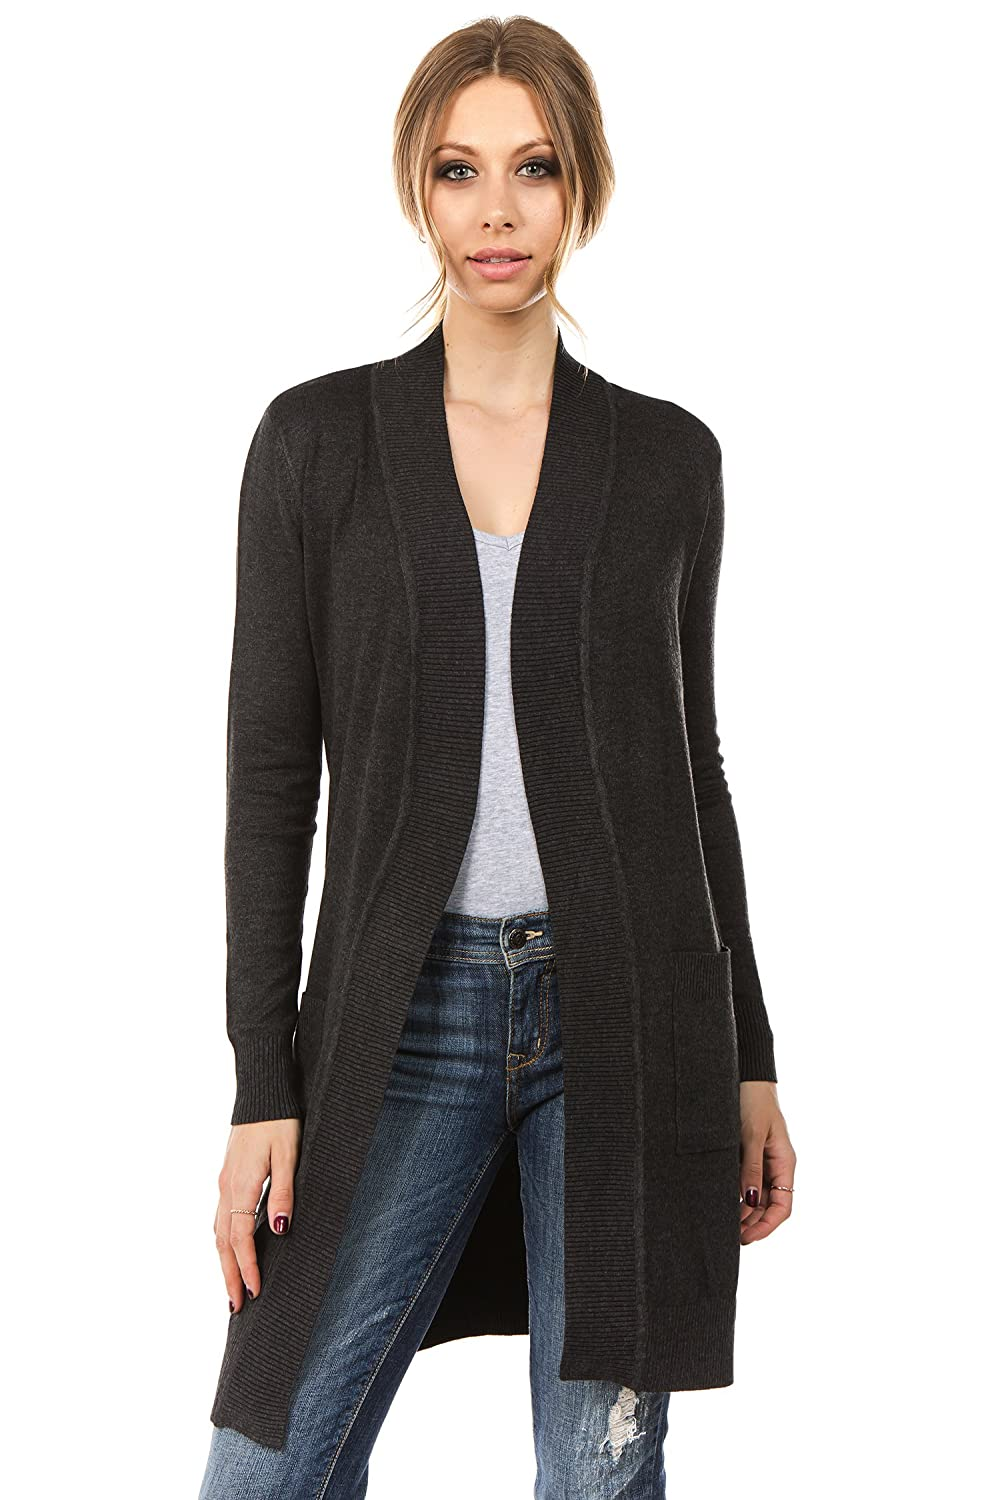 Charcoal CIELO Women's Long Sleeve Sweater Duster Cardigan